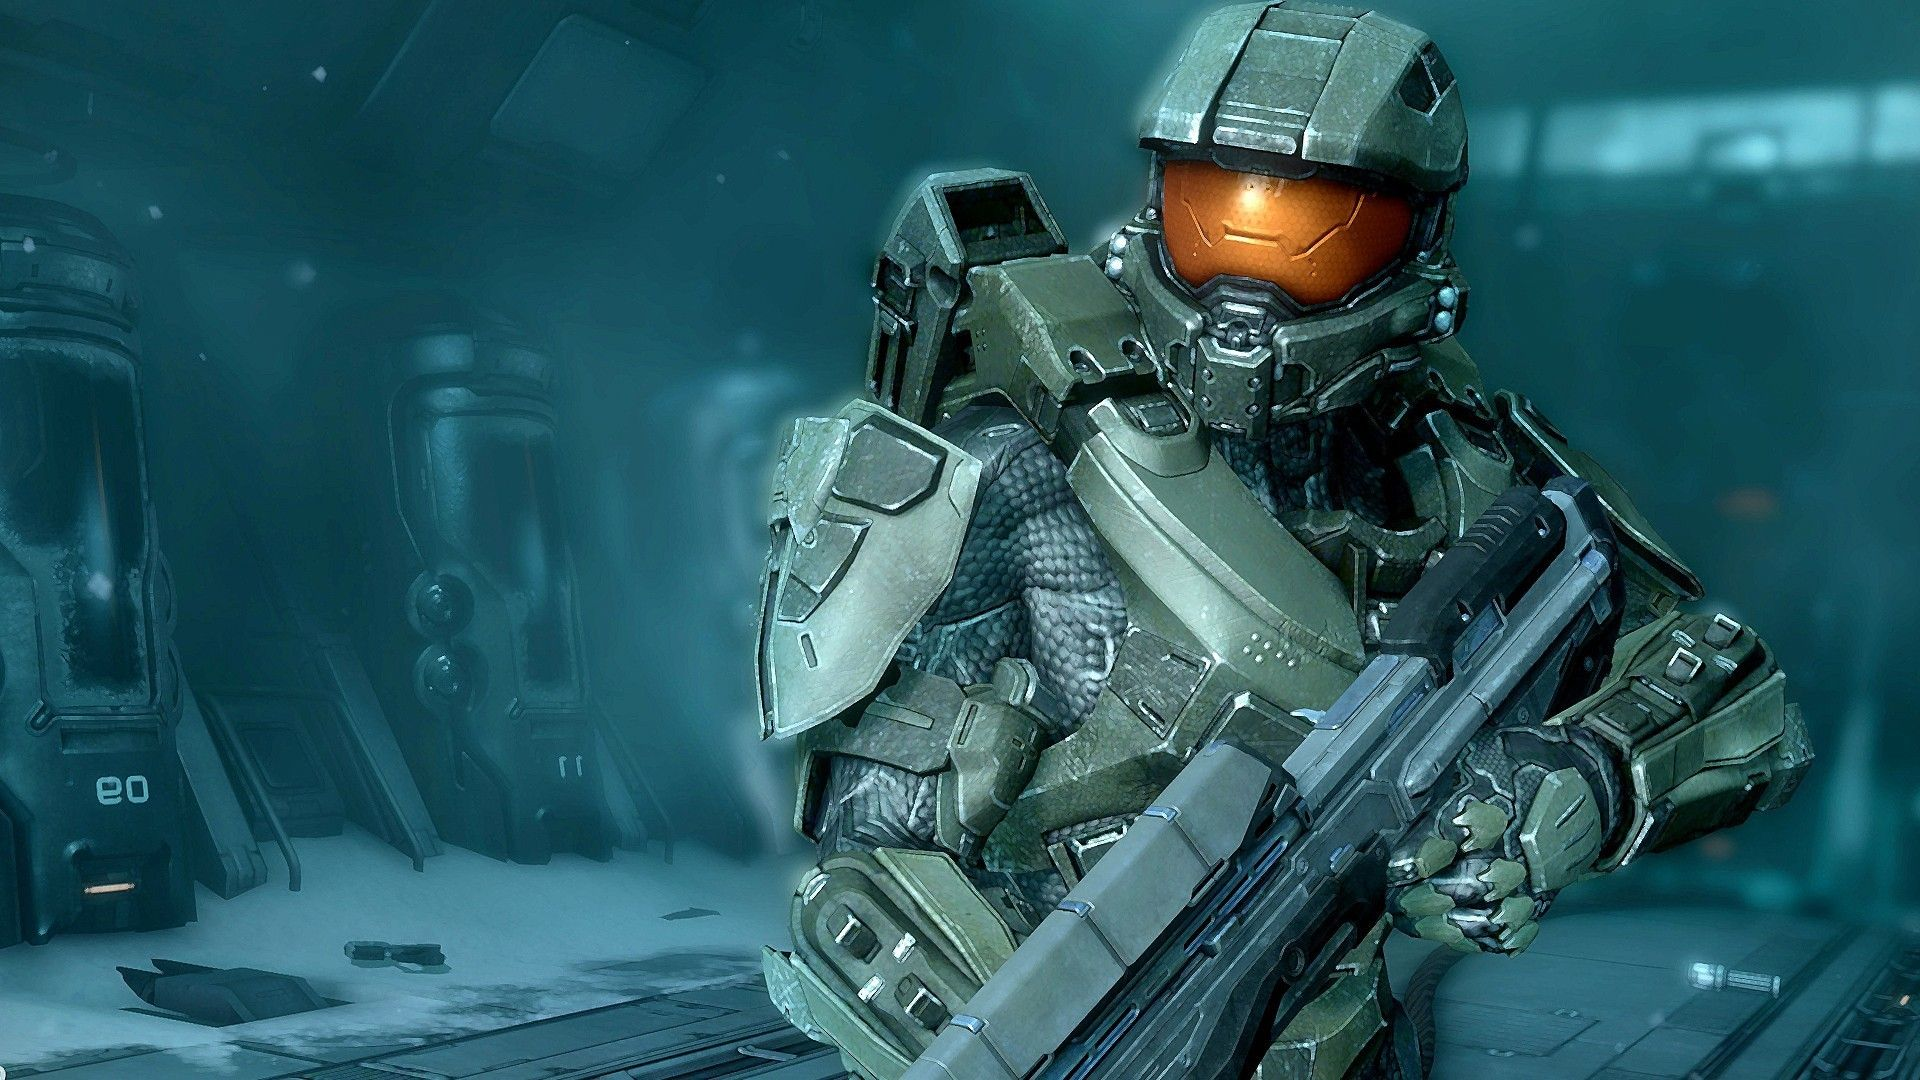 Video Games Master Chief Halo 4 1920x1080 Games Master Chief